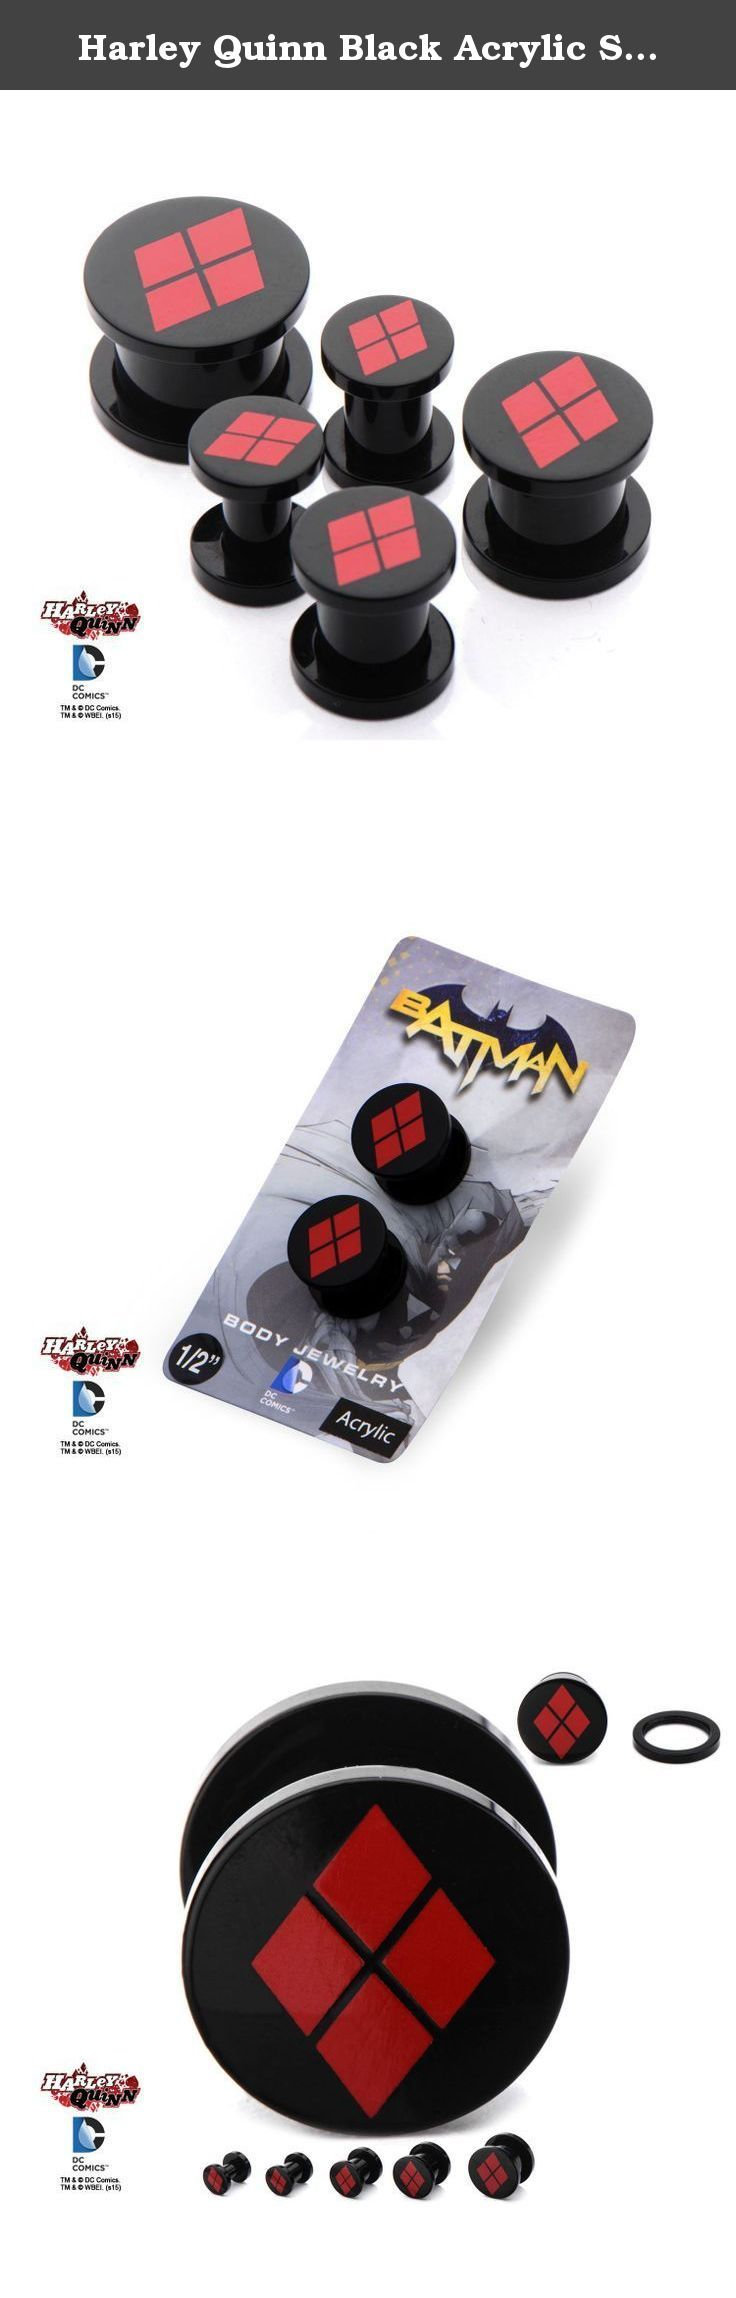 "Harley Quinn Black Acrylic Screw Fit Plugs Choose Size (1/2"" (12mm)). Great for any fan of Harley Quinn or if you want to impress that Mr. J in your life."